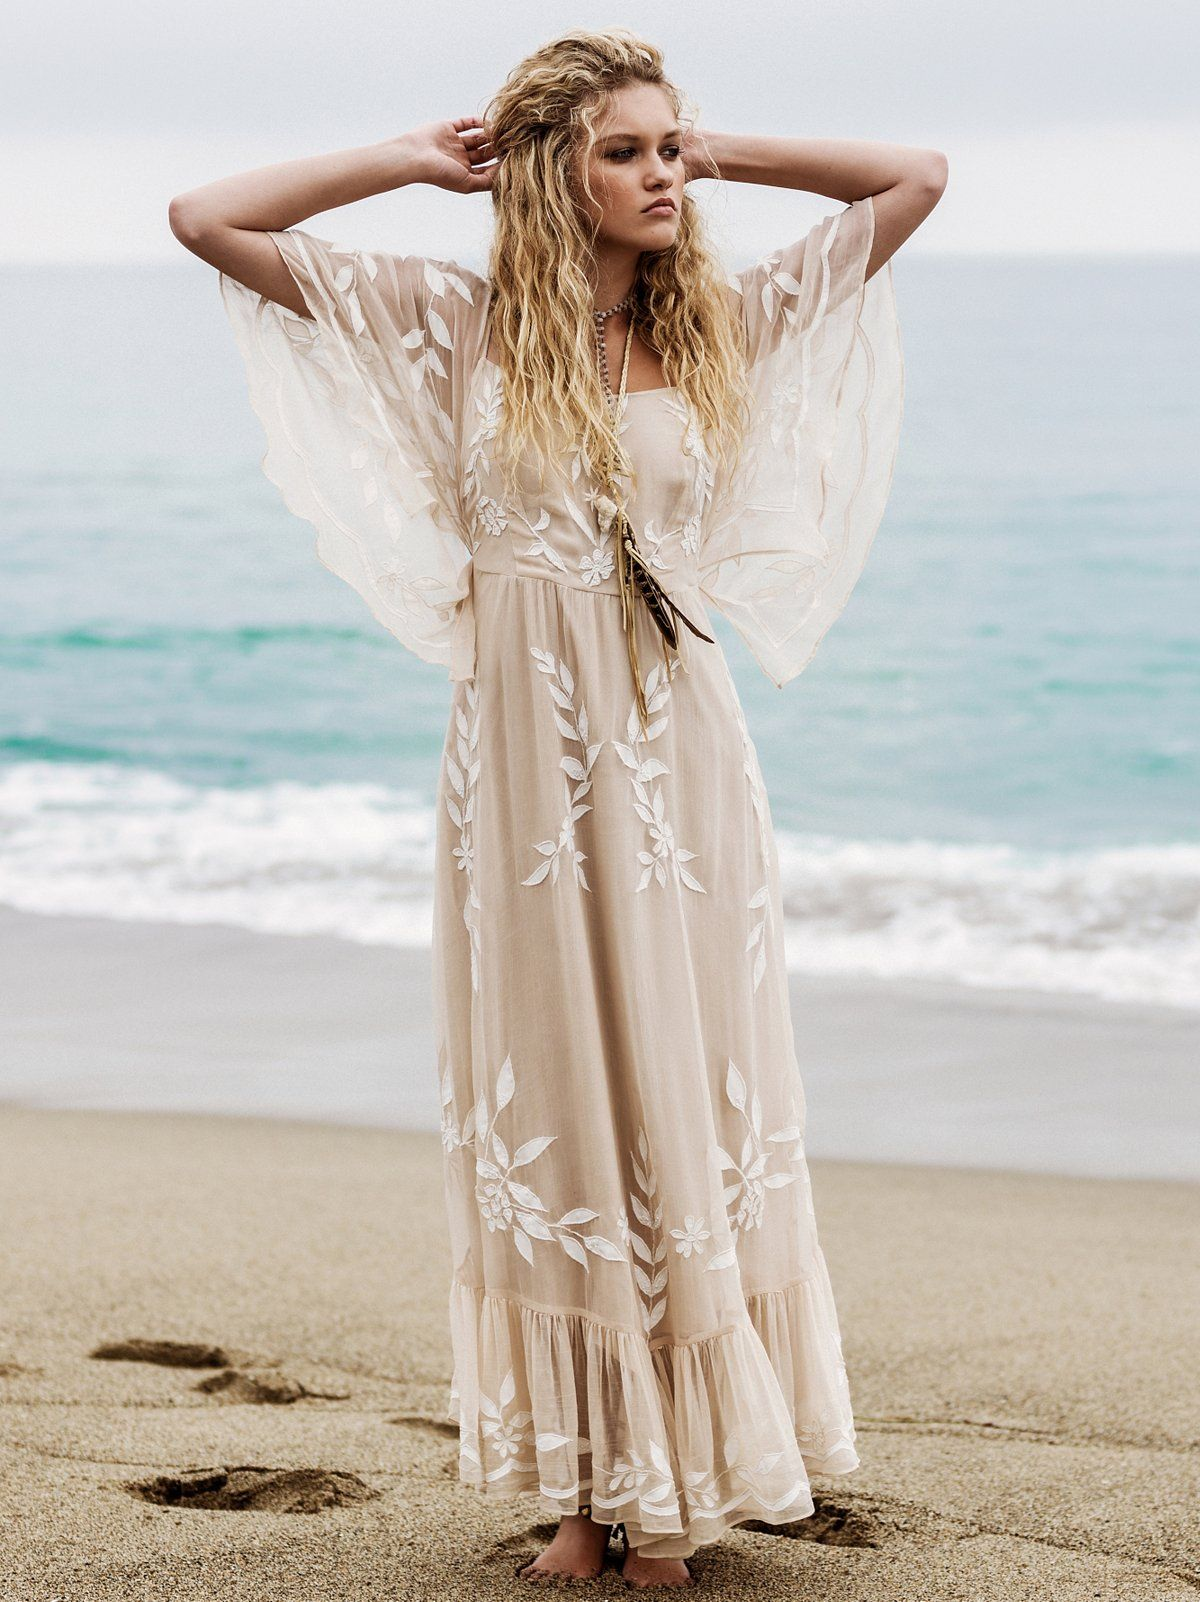 7a85b39dbb094 An awesome boho wedding dress selection for under $ 1000 you will ...